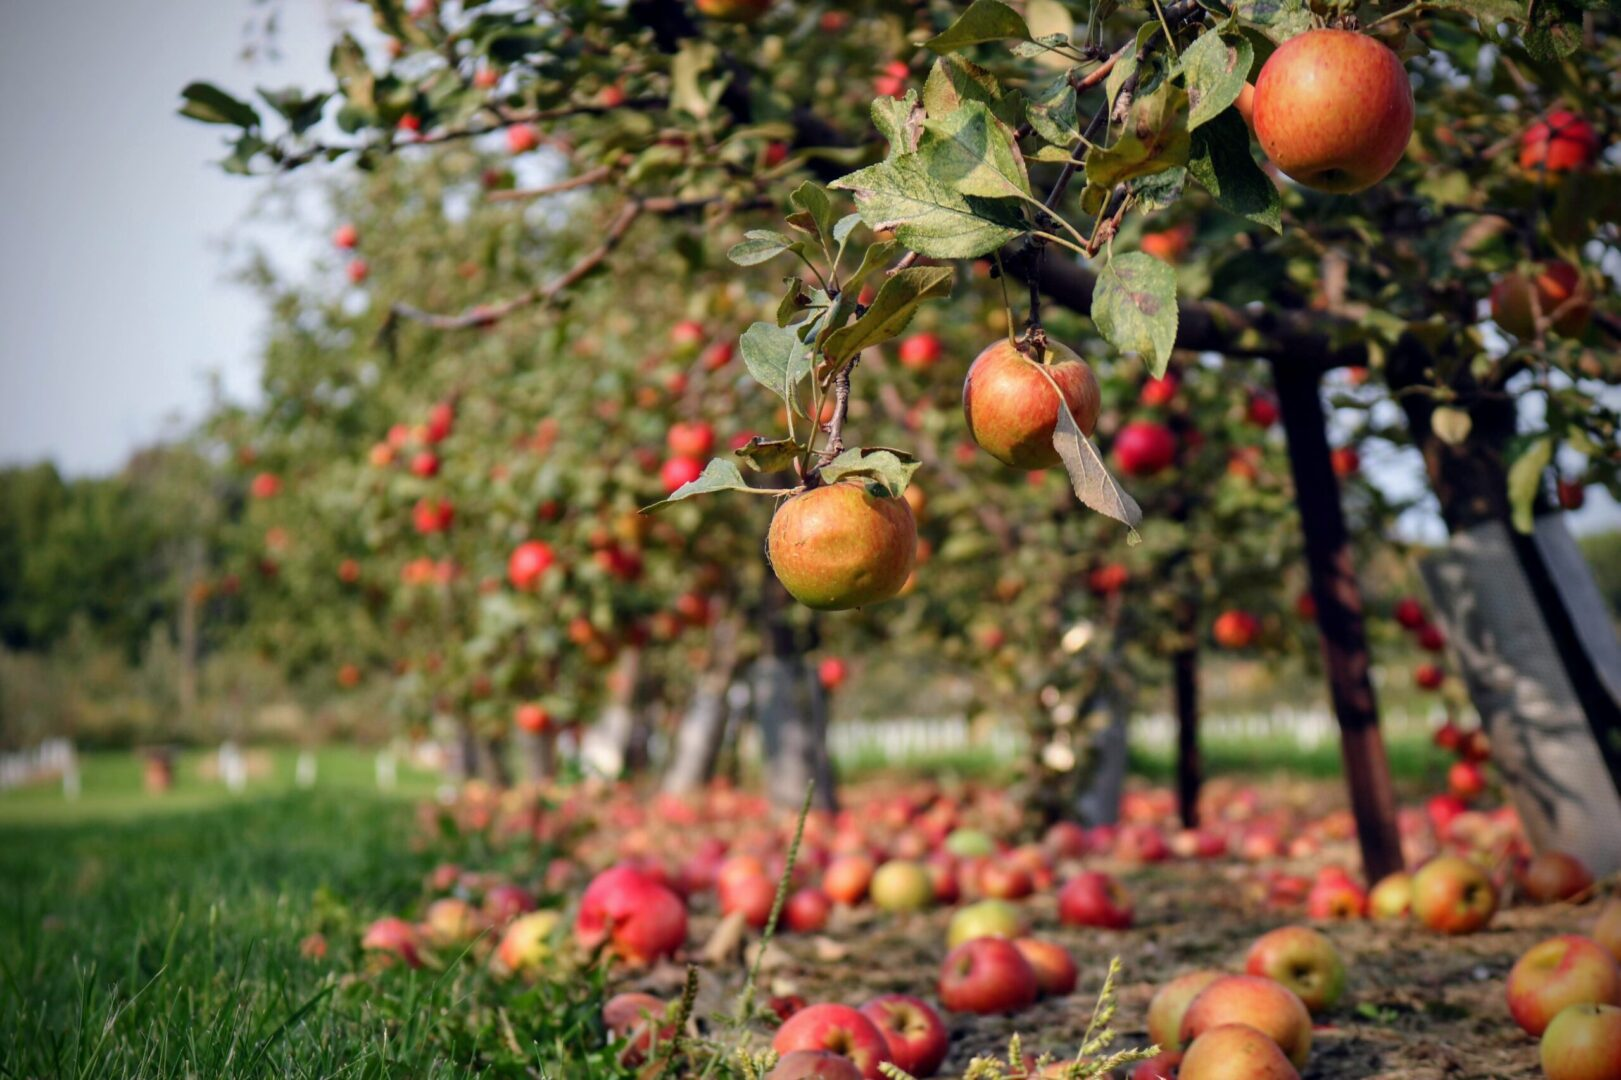 Apple orchard during the fall season. Many apples have naturally fallen to the ground.